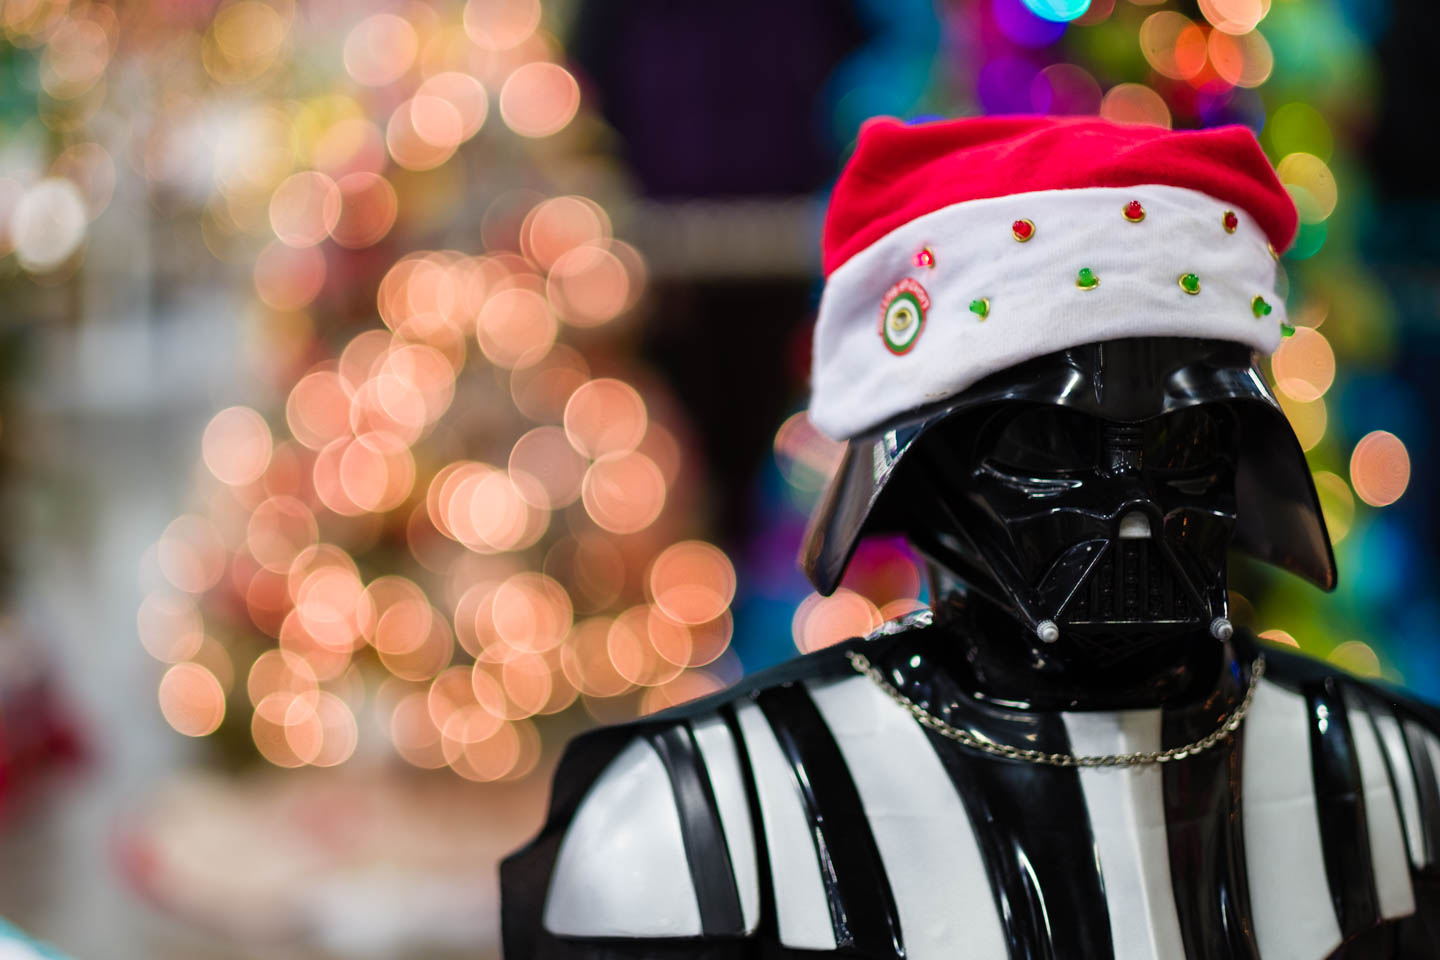 Darth Vader as Santa